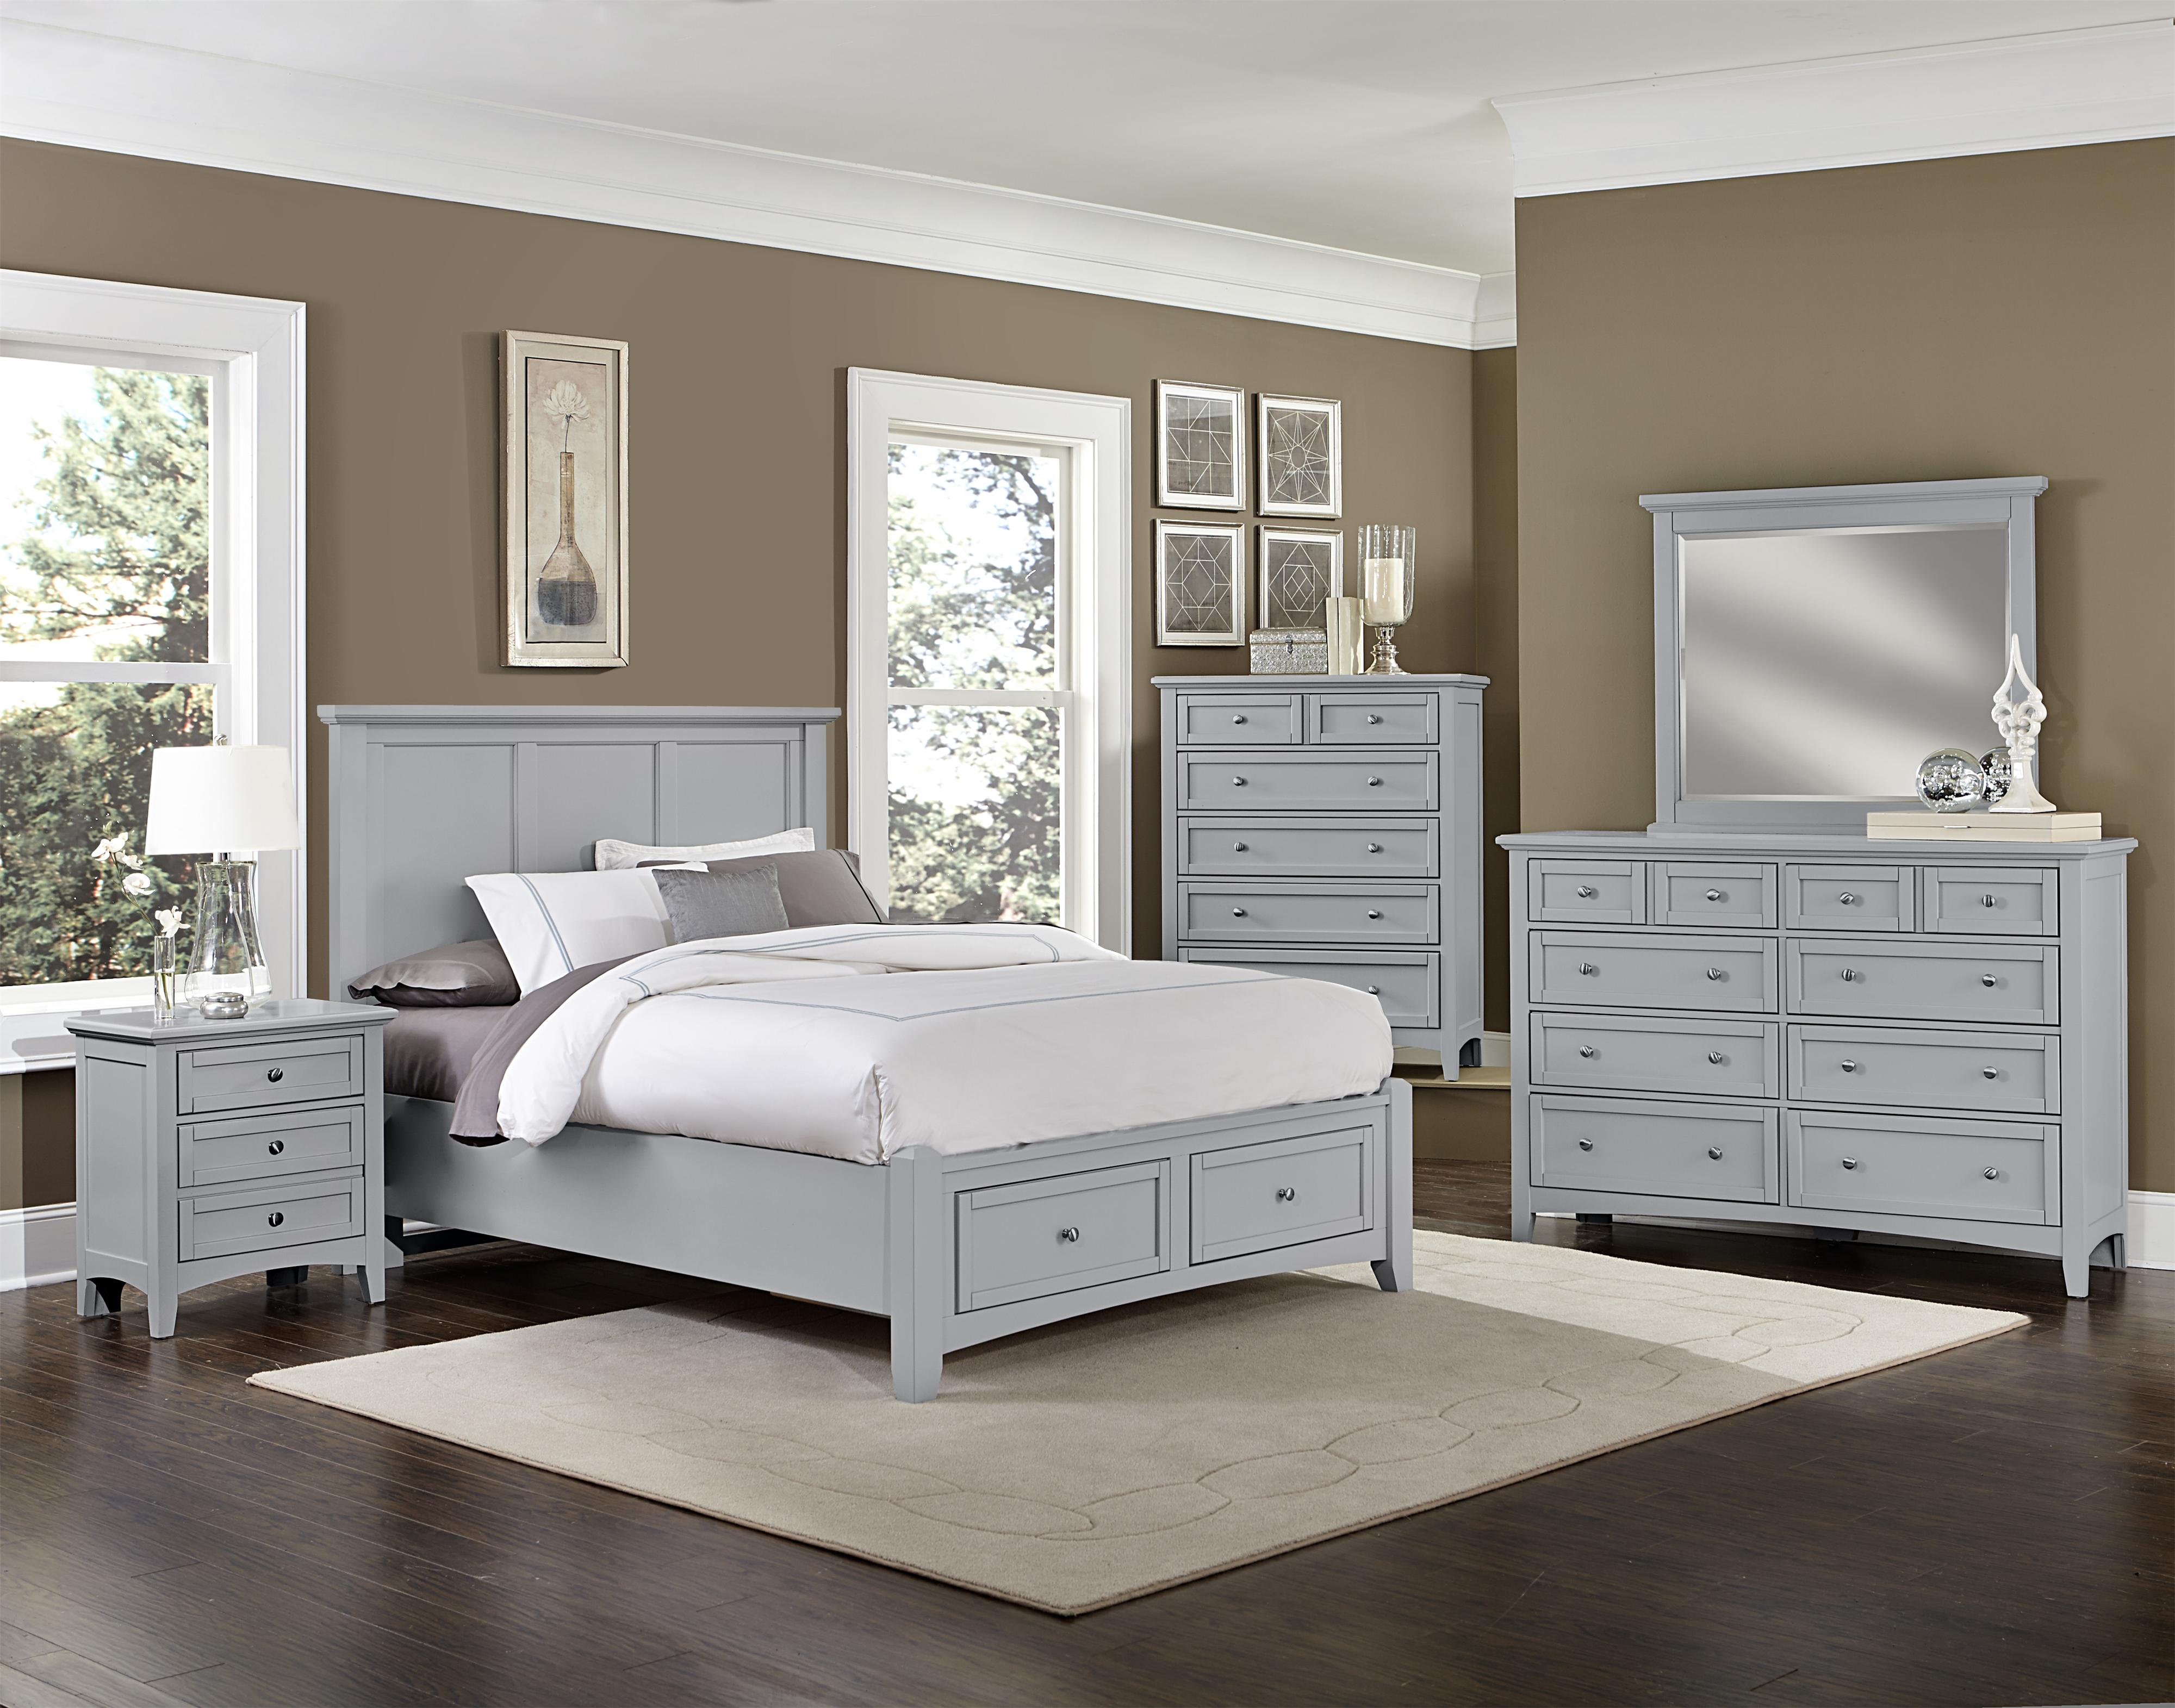 vaughan bassett bonanza queen bedroom group belfort 17708 | products 2fvaughan bassett 2fcolor 2fbonanza bb26 20q 20bedroom 20group 203 b0